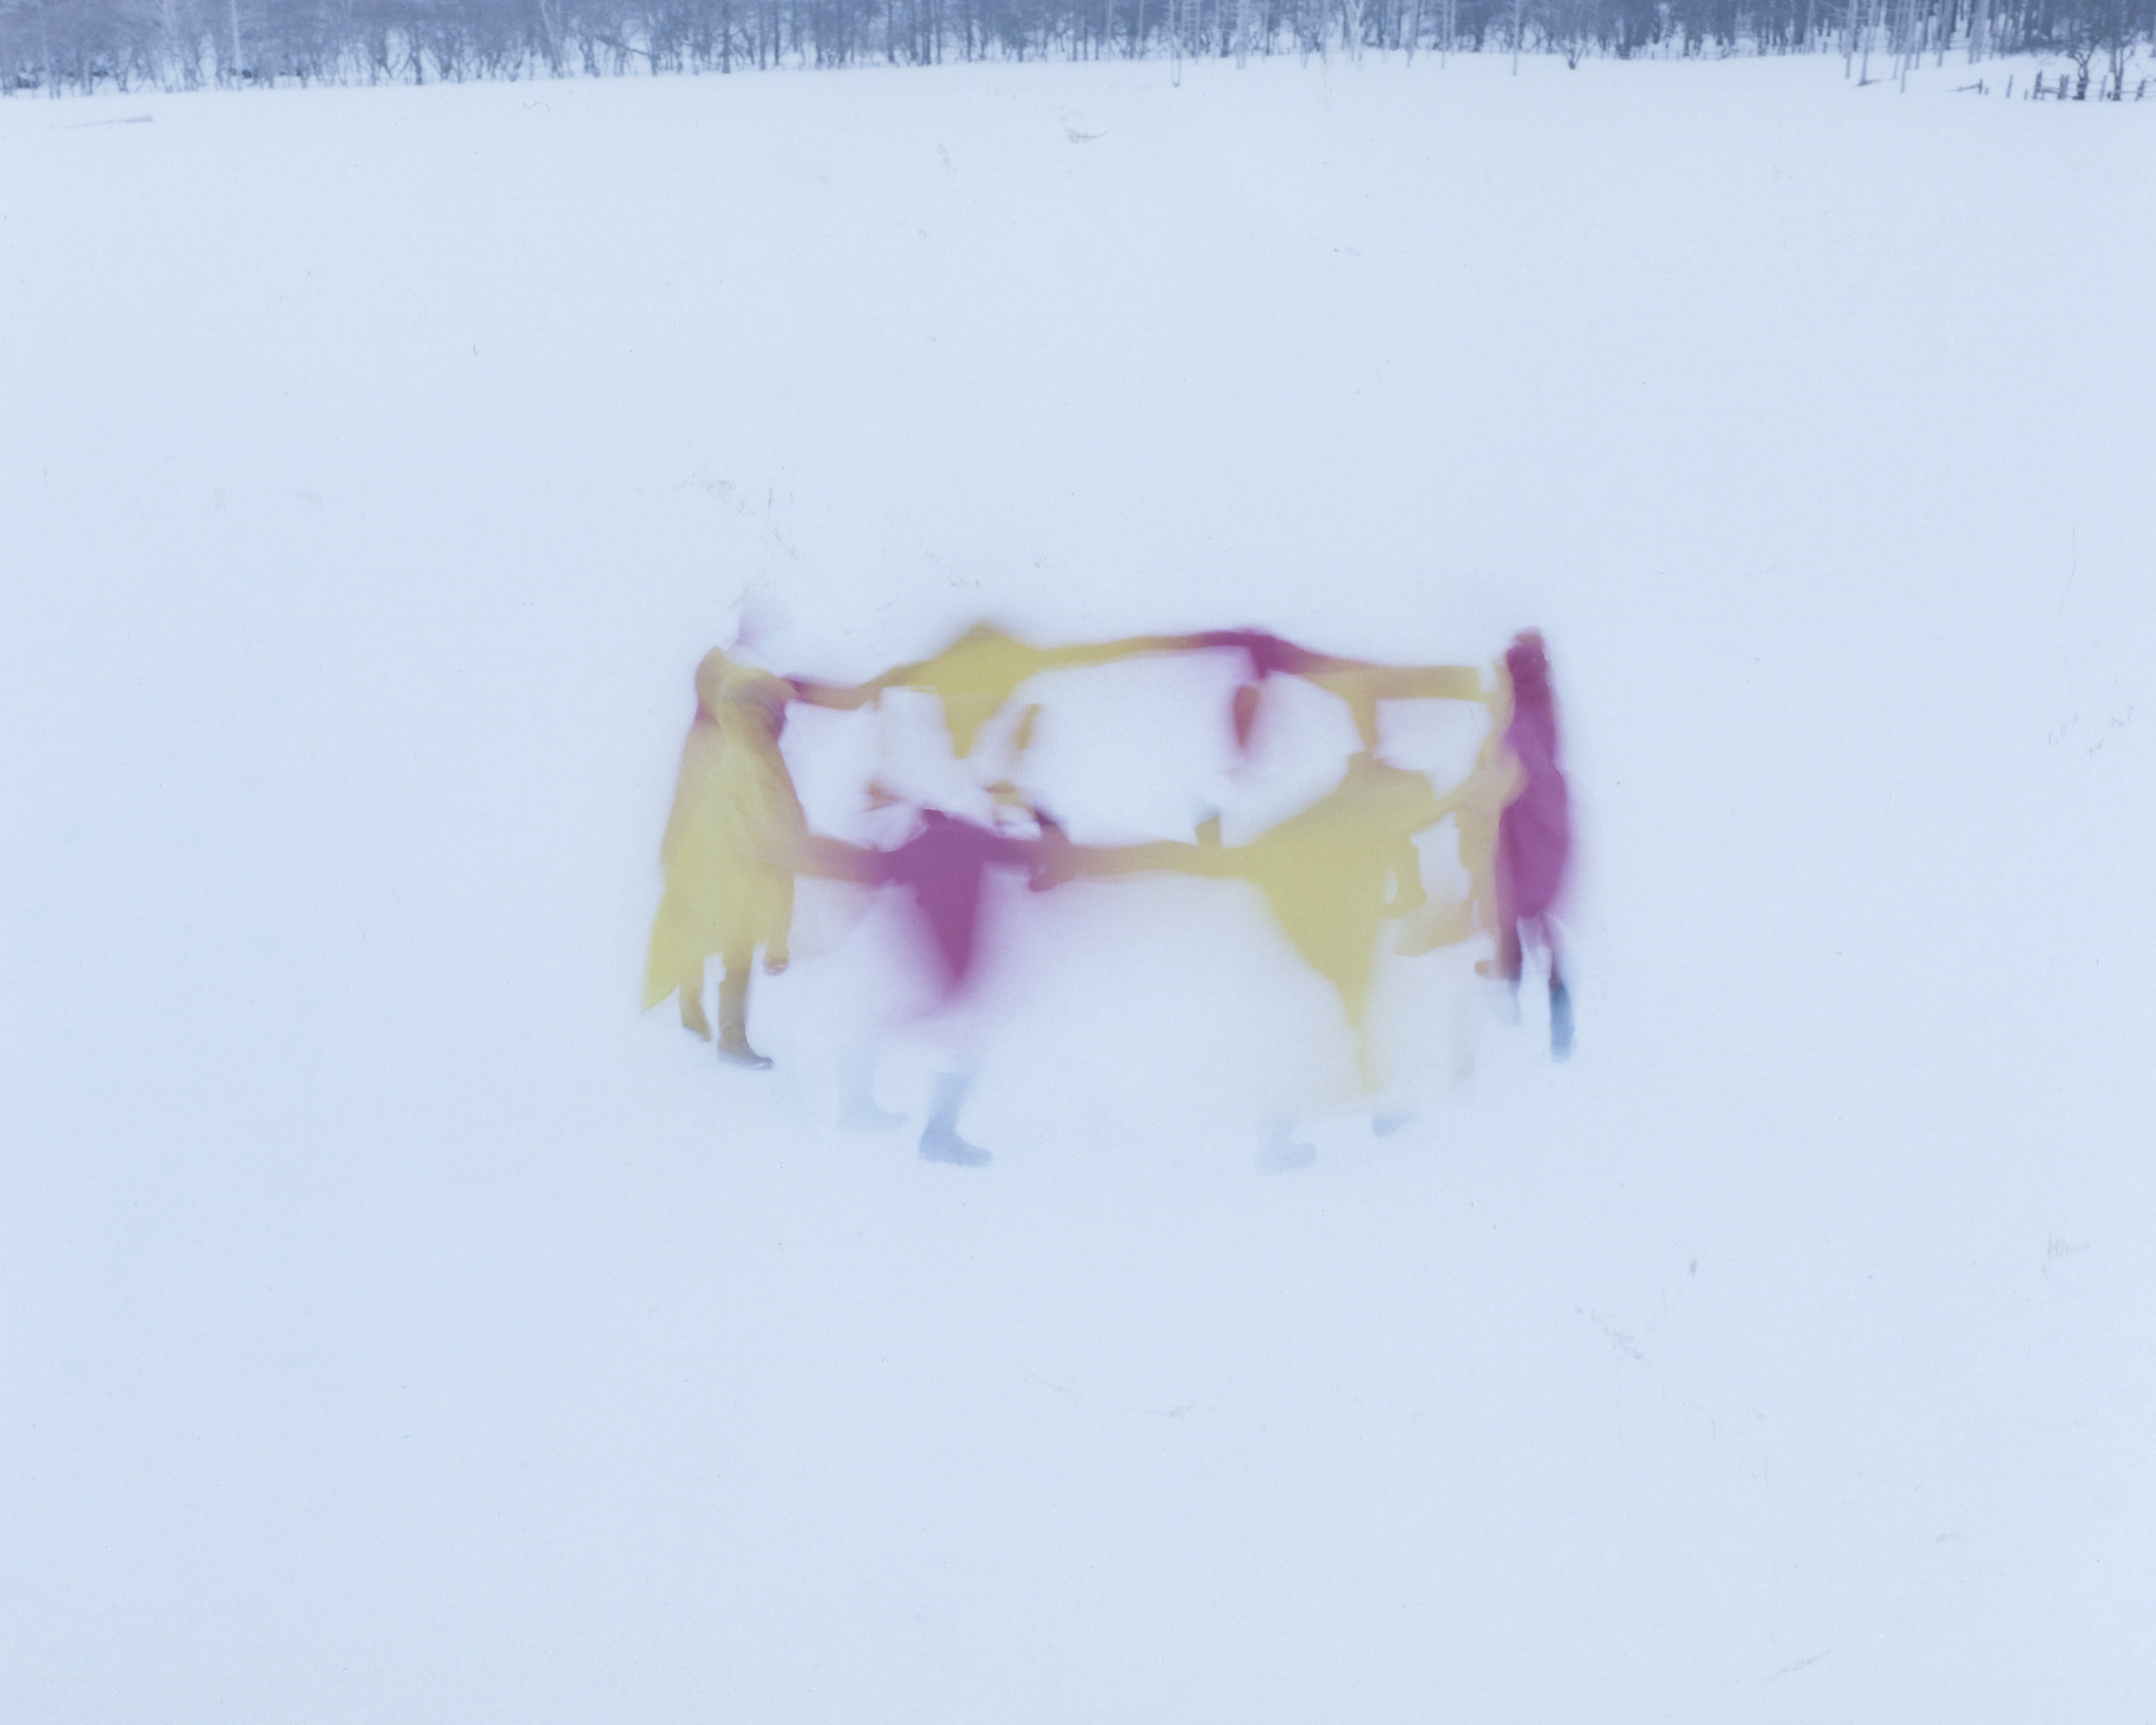 Osamu Yokonami,  Assembly Snow 2 , 2015  Digital pigment print, 944 x 1159 mm (approx. 37 x 46 in), edition of 3; 554 x 680 mm (approx. 22 x 27 in), edition of 7  Special edition: 267 x 330 mm (10.5 x 13 in), edition of 10   Inquire